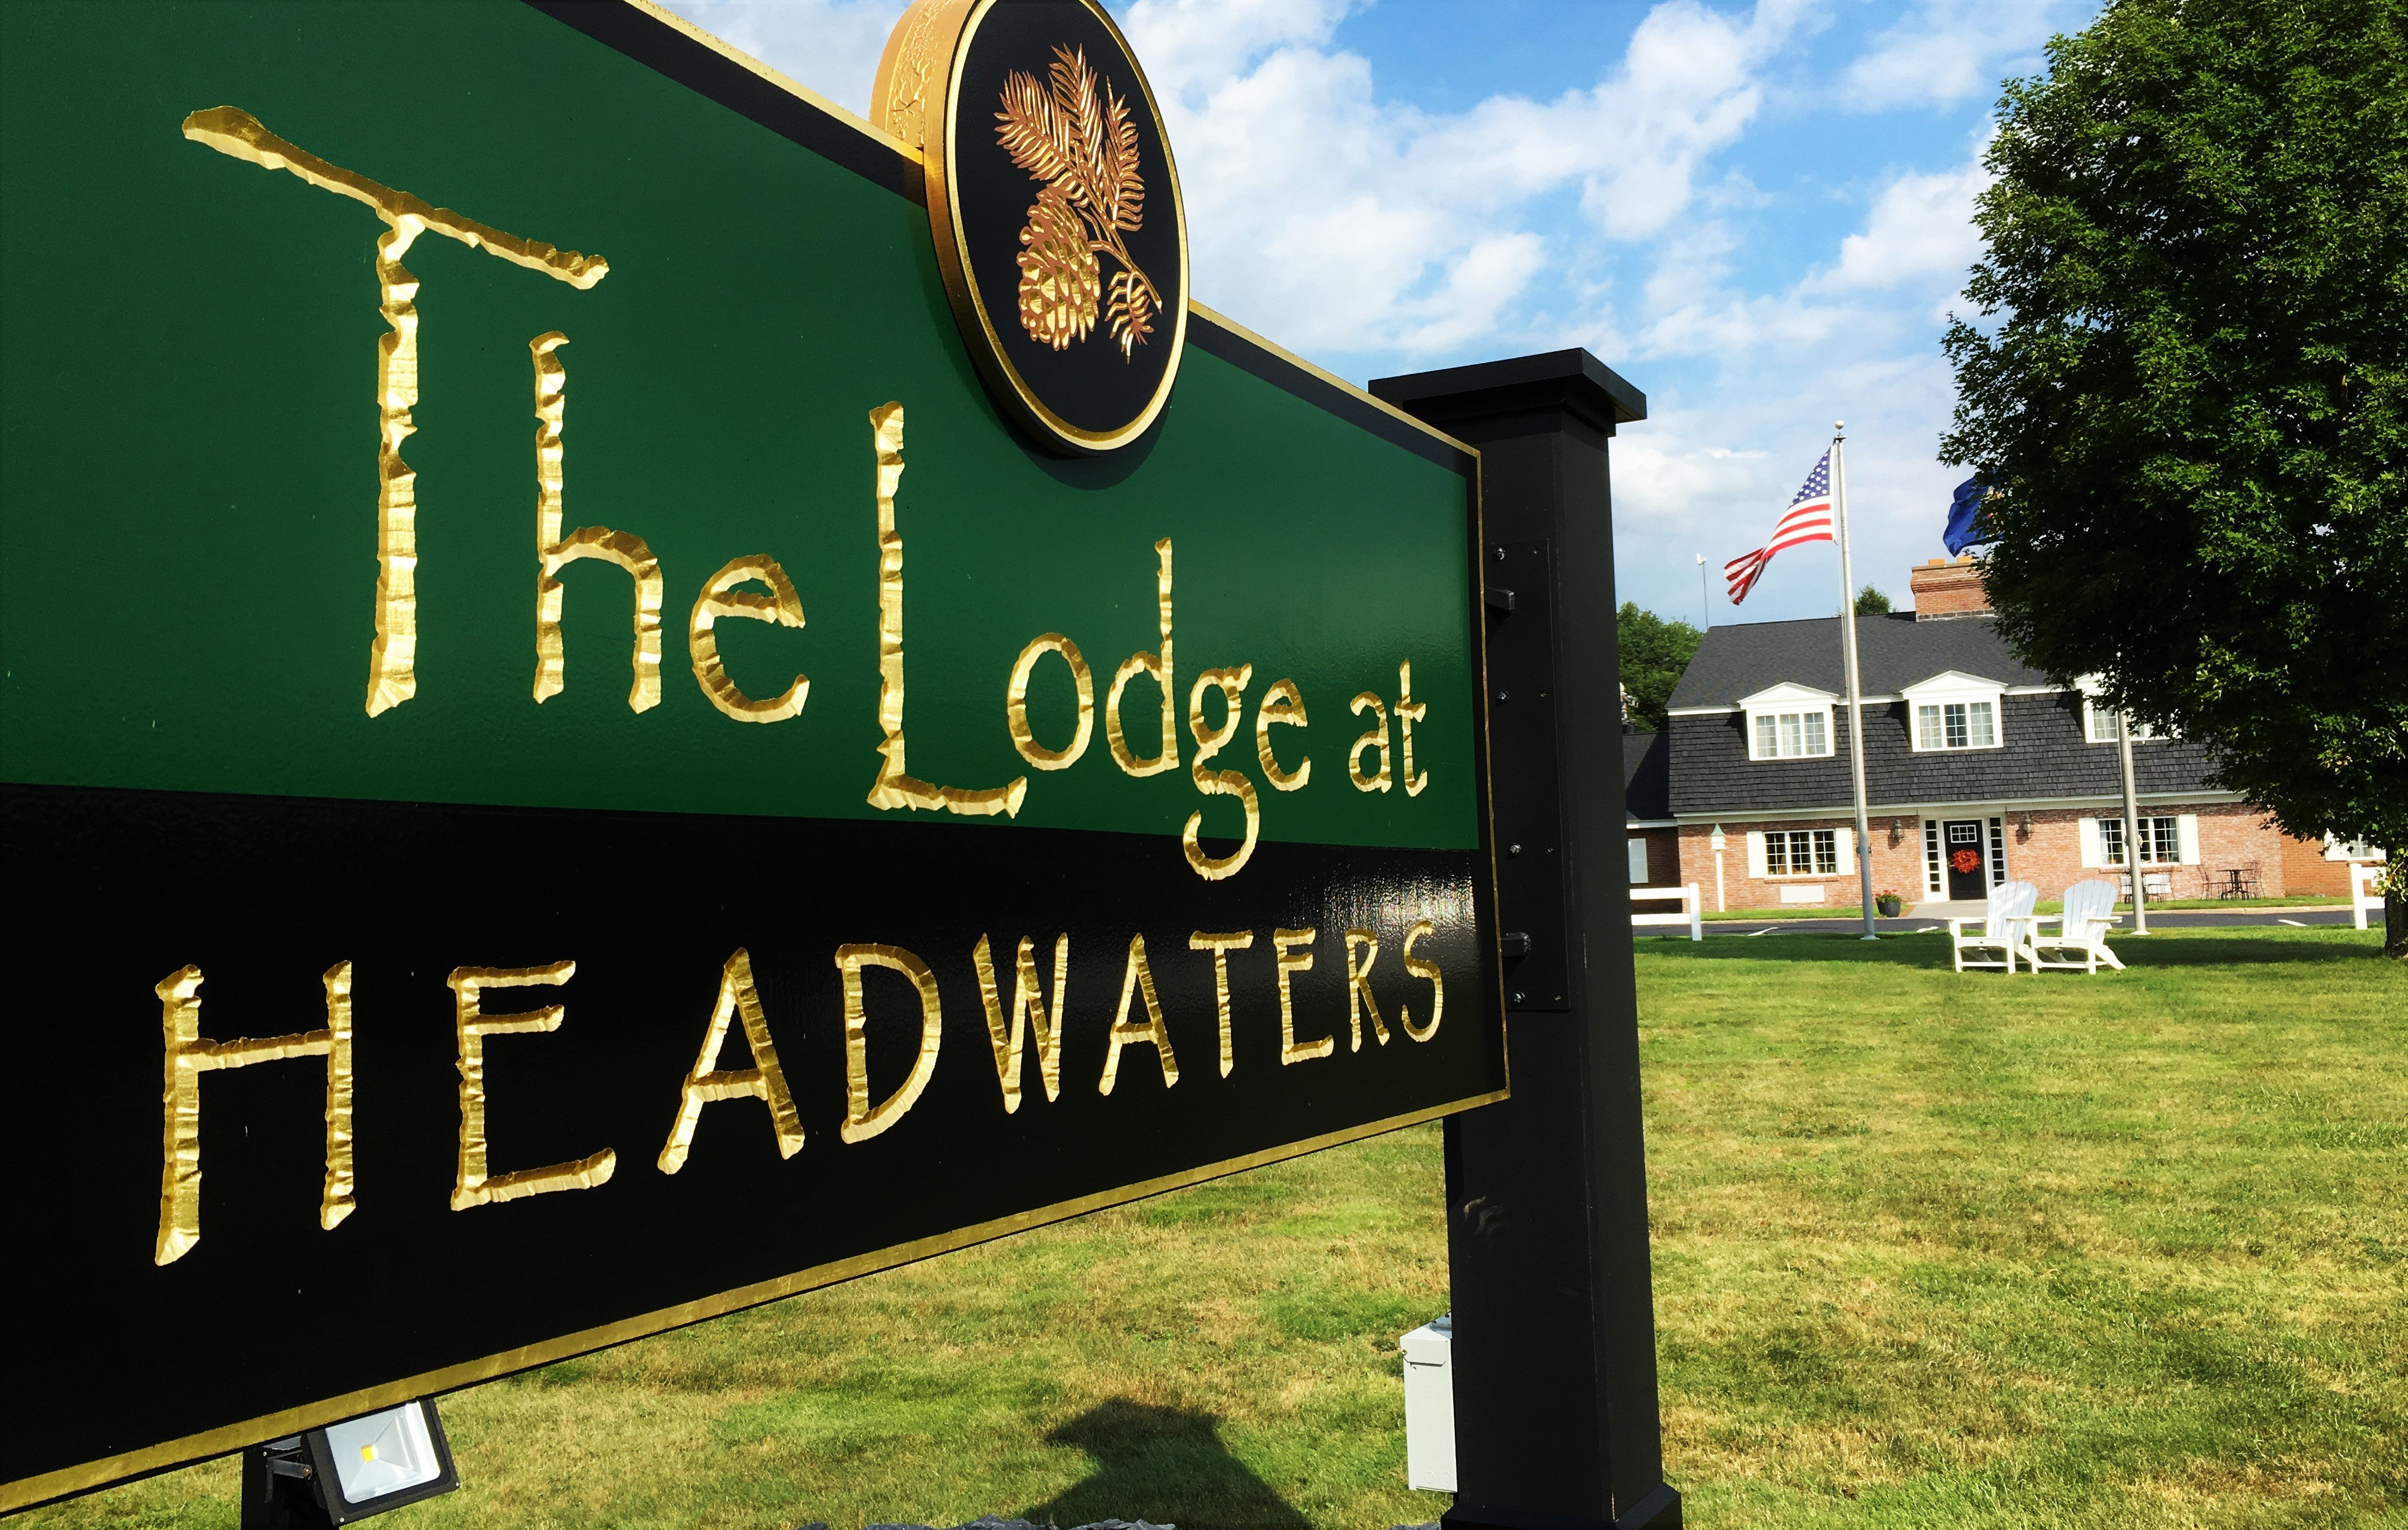 The Lodge at Headwaters